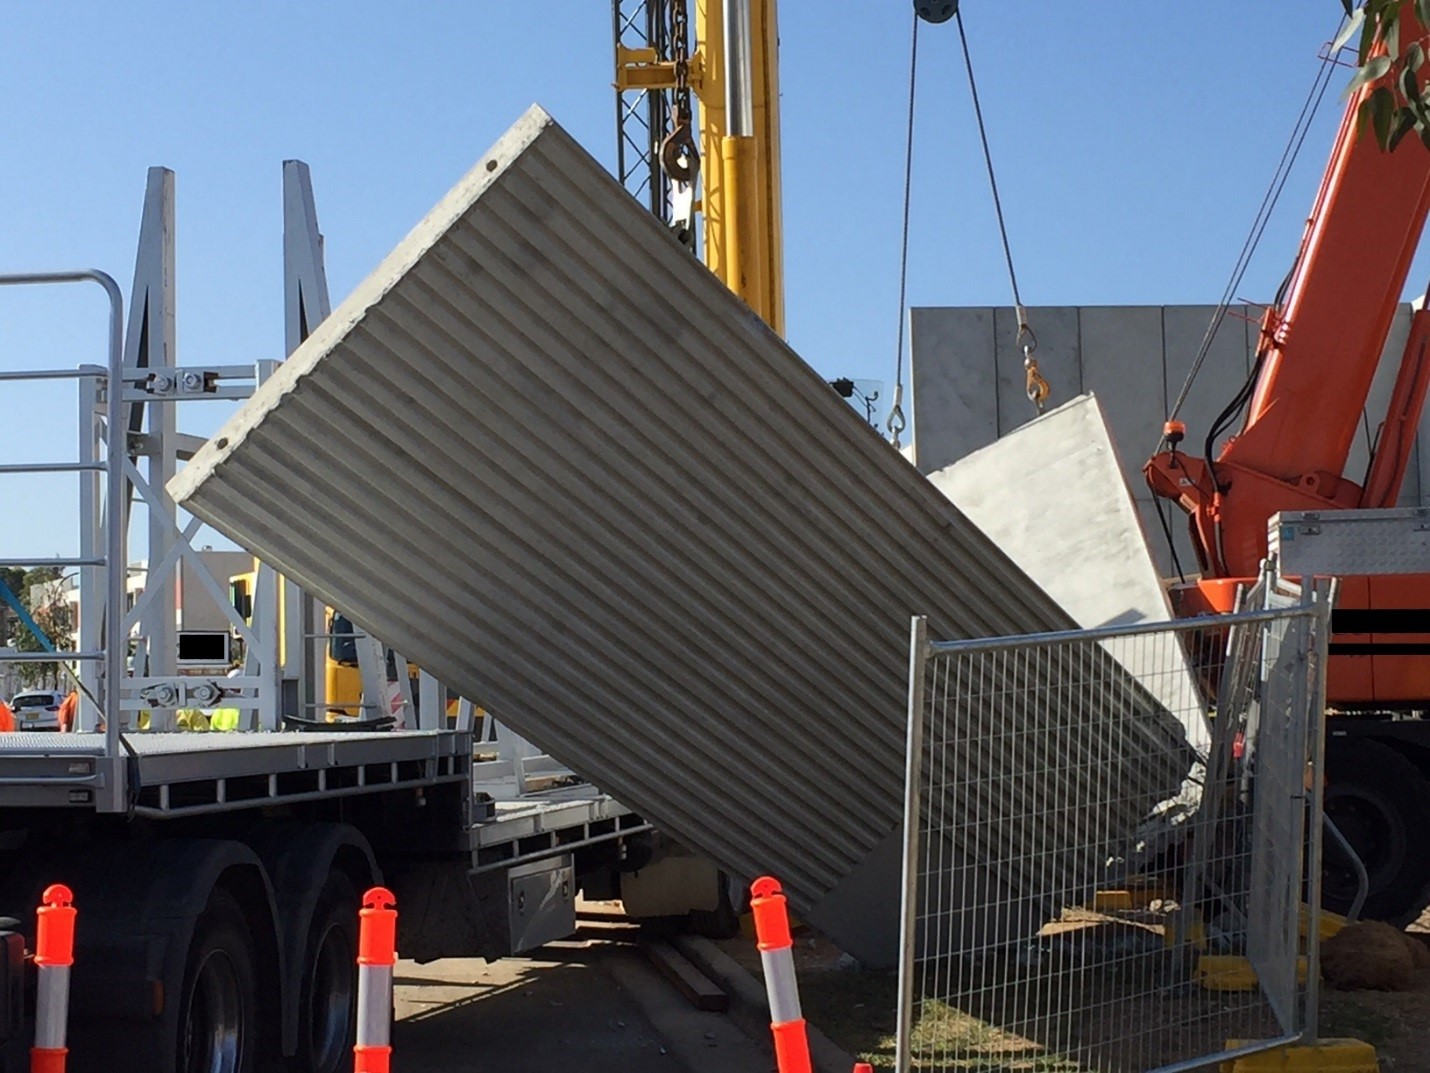 The pre-fabricated concrete panel which broke into pieces when being raised into place.